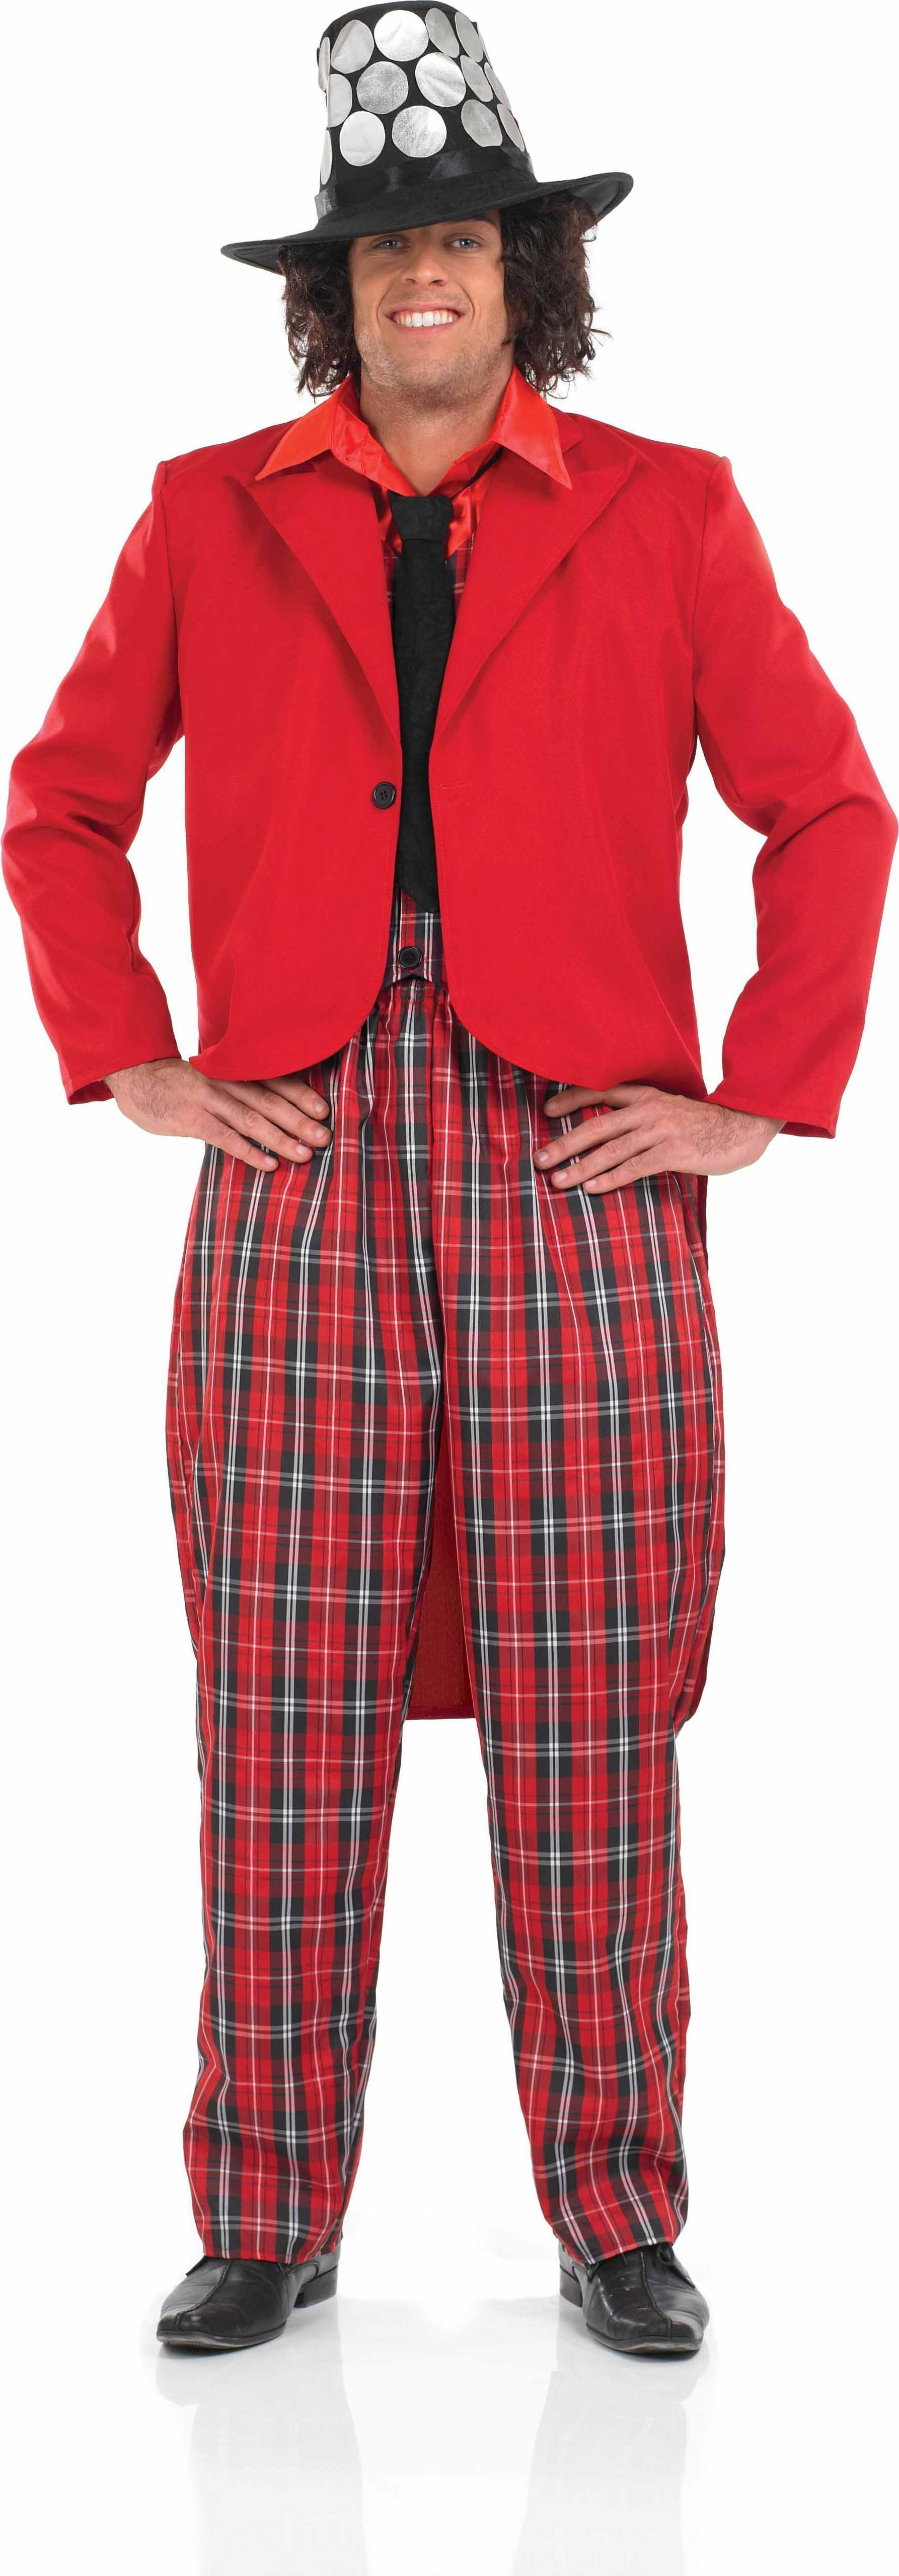 Mens 70S Pop Legend 1970'S Outfit (Red, Black)